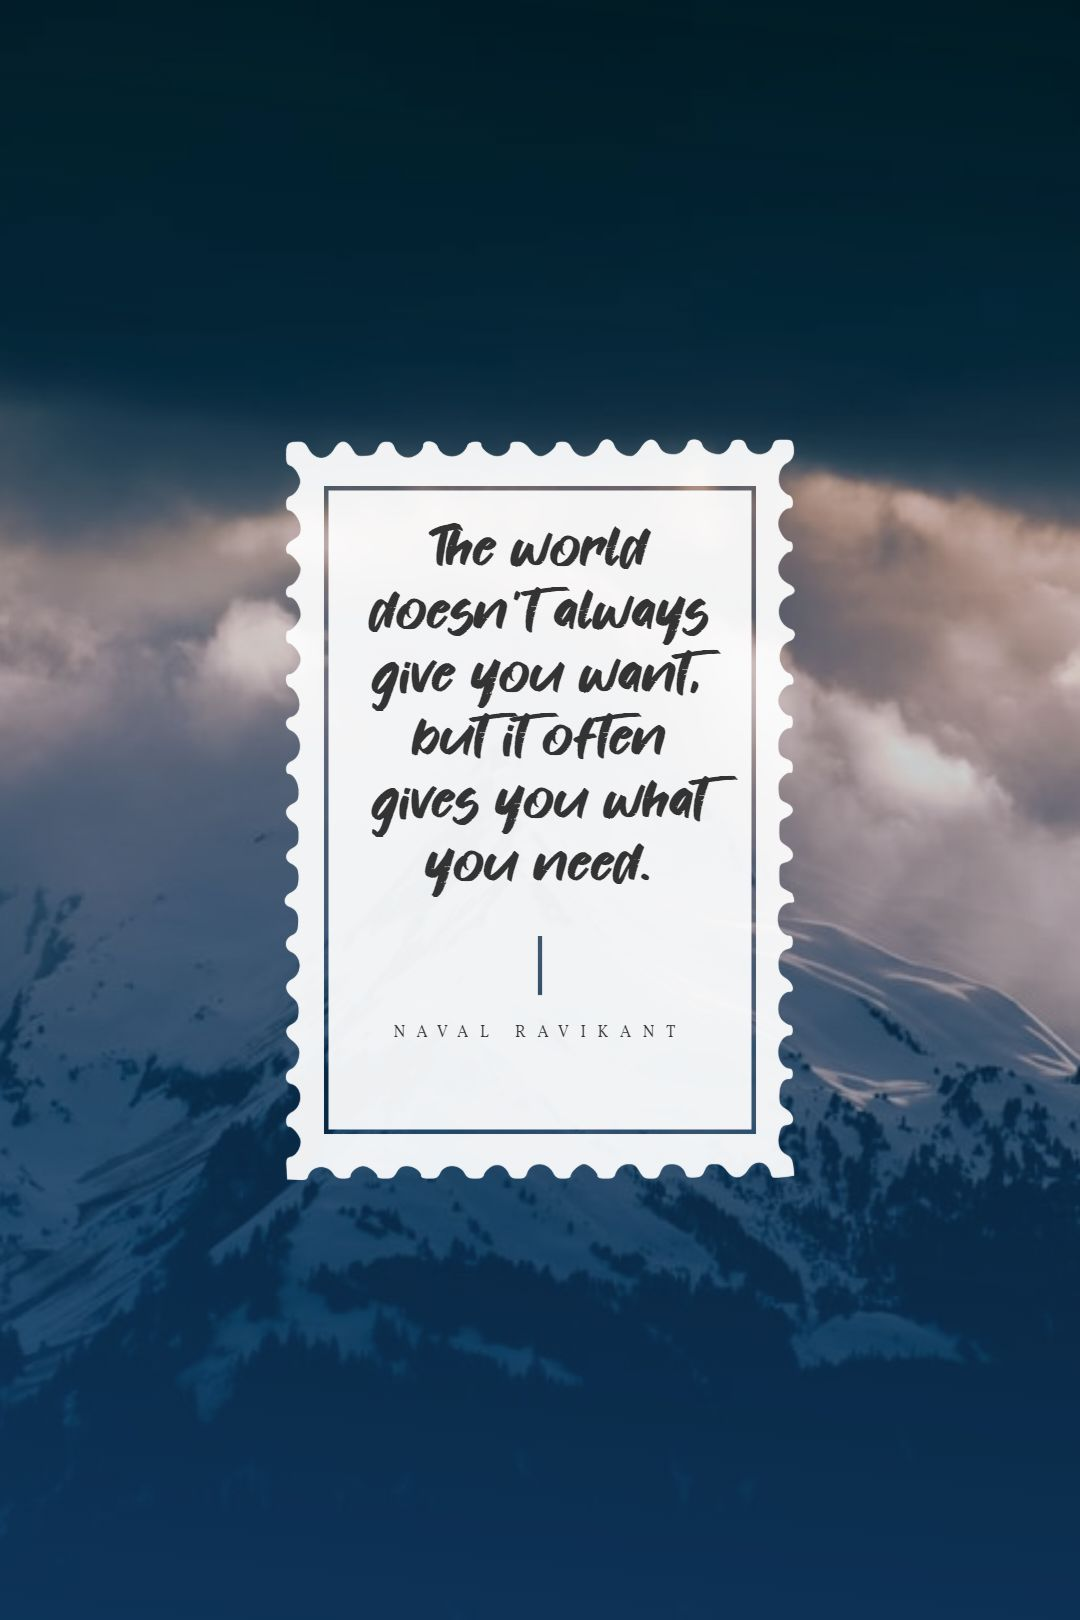 Quotes image of The world doesn't always give you want, but it often gives you what you need.